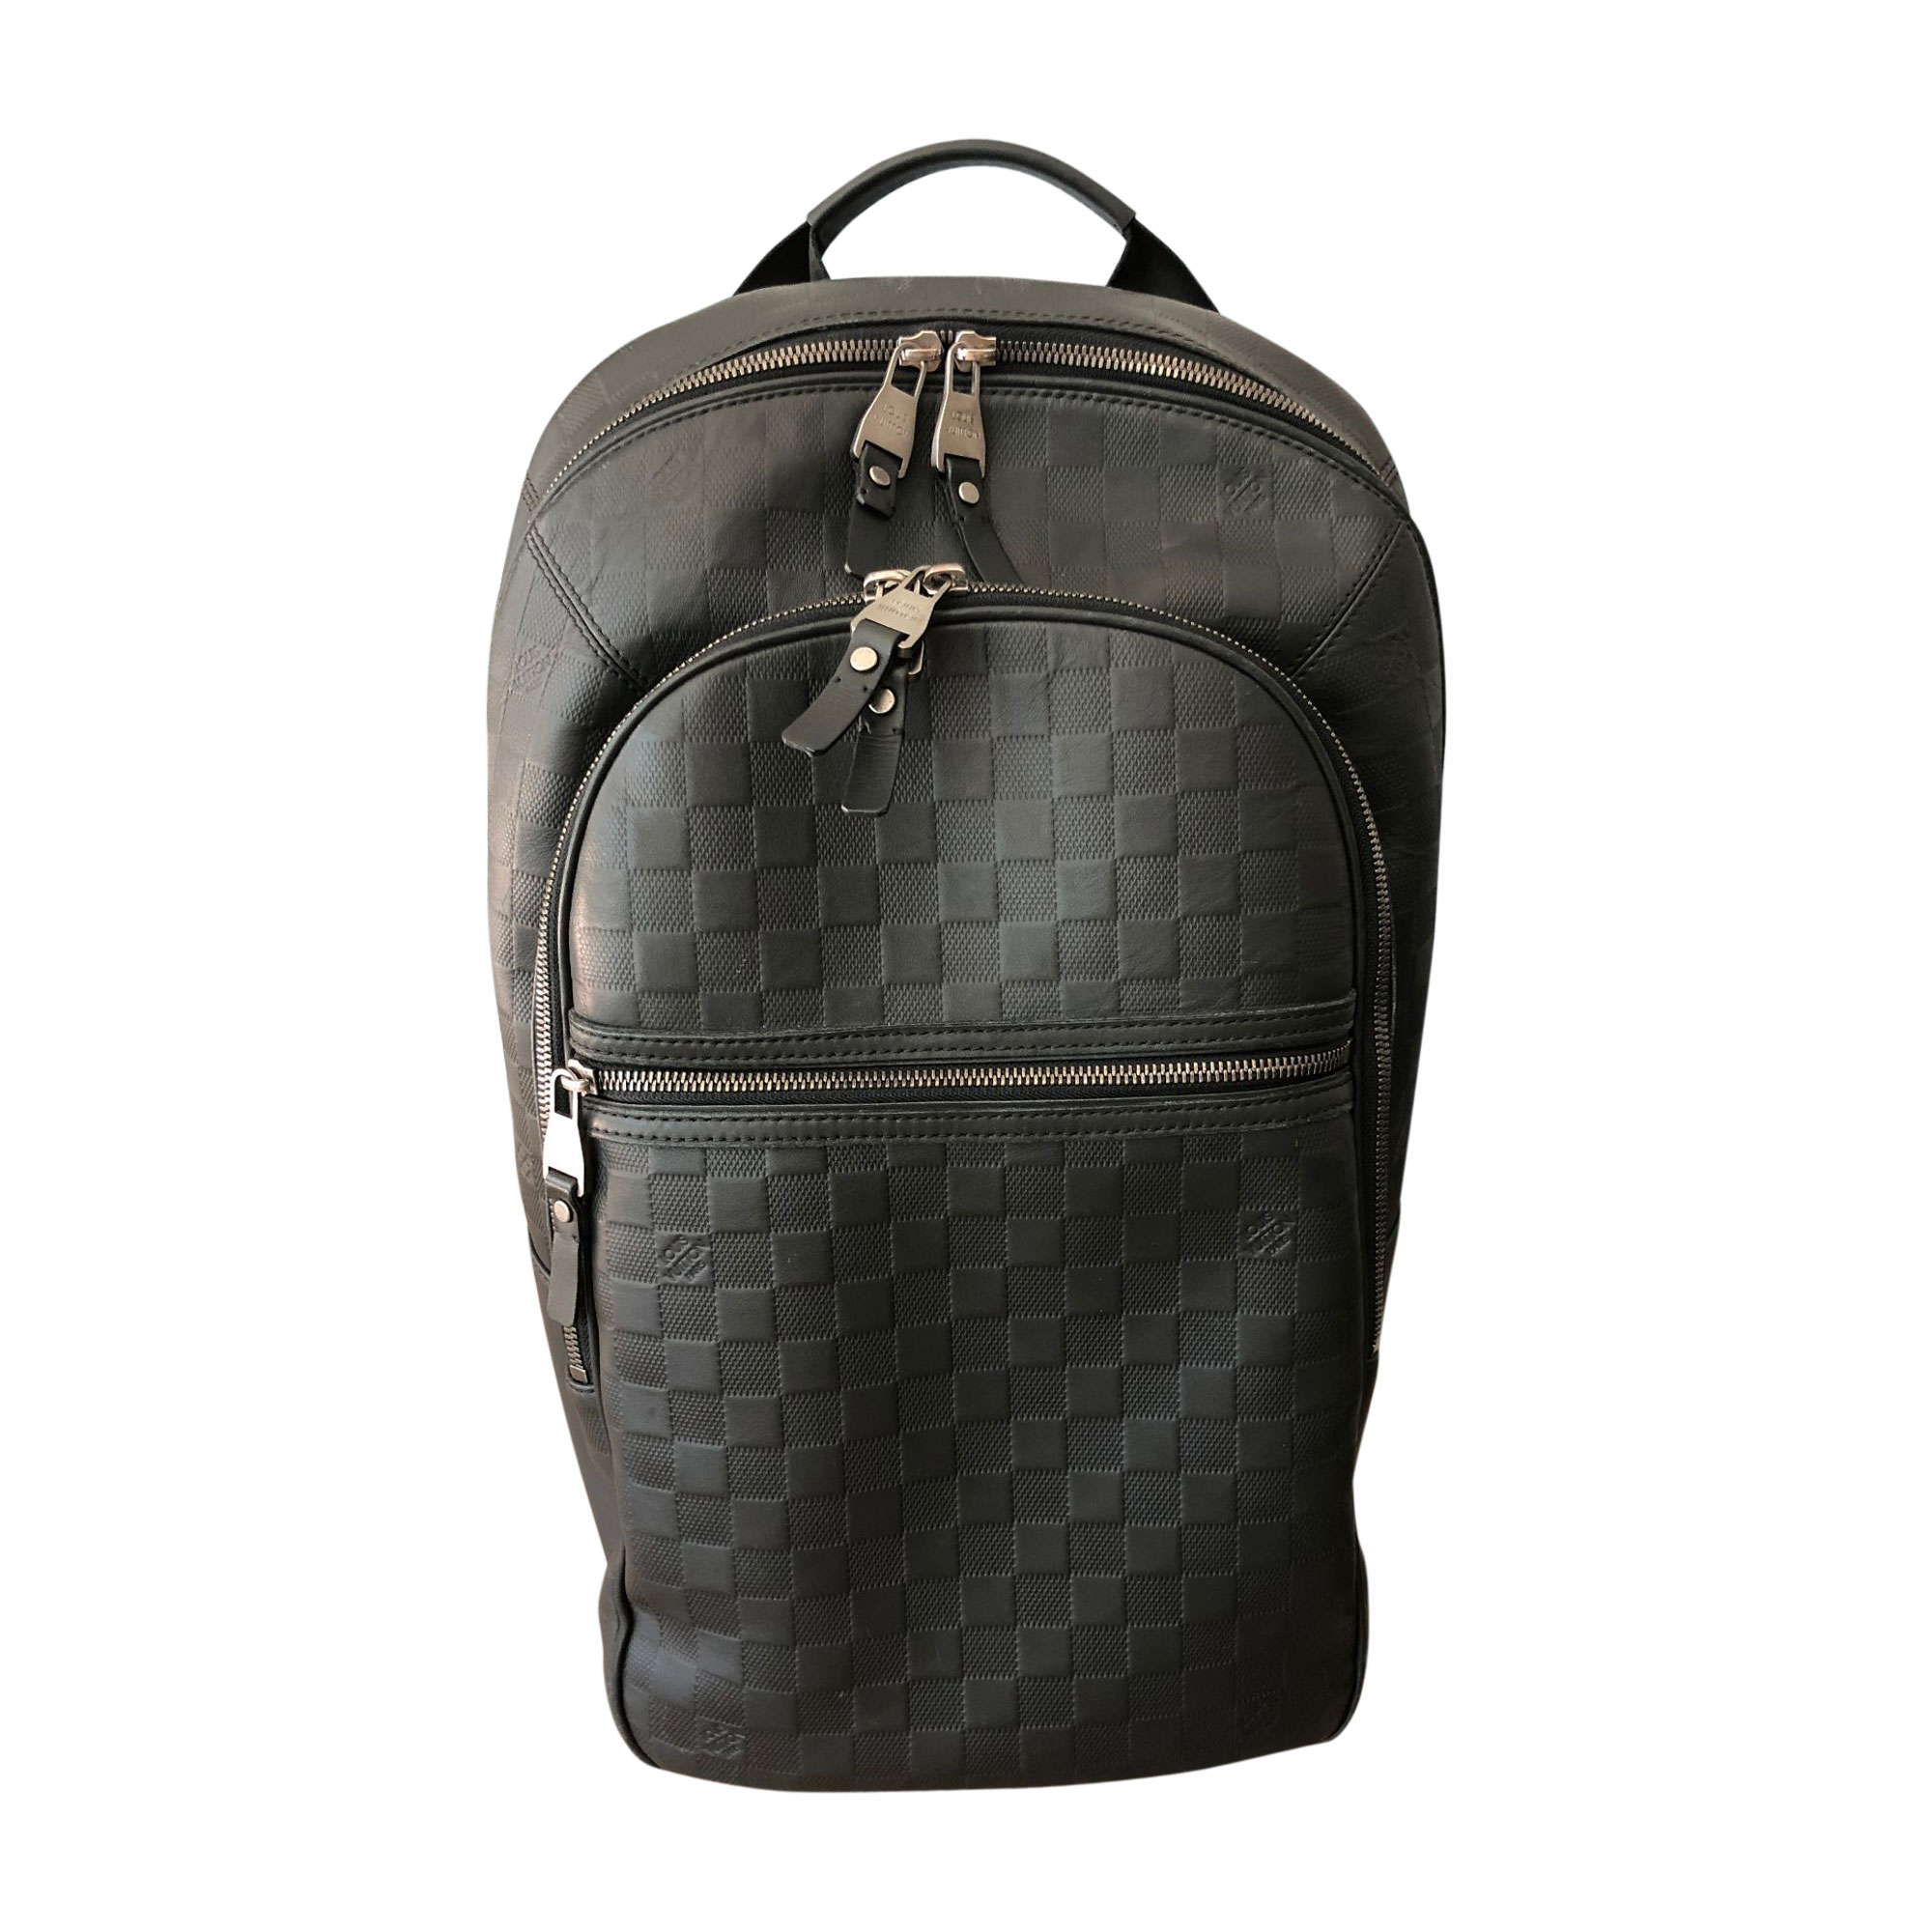 9fdee2ade841 Backpack LOUIS VUITTON black - 7822010